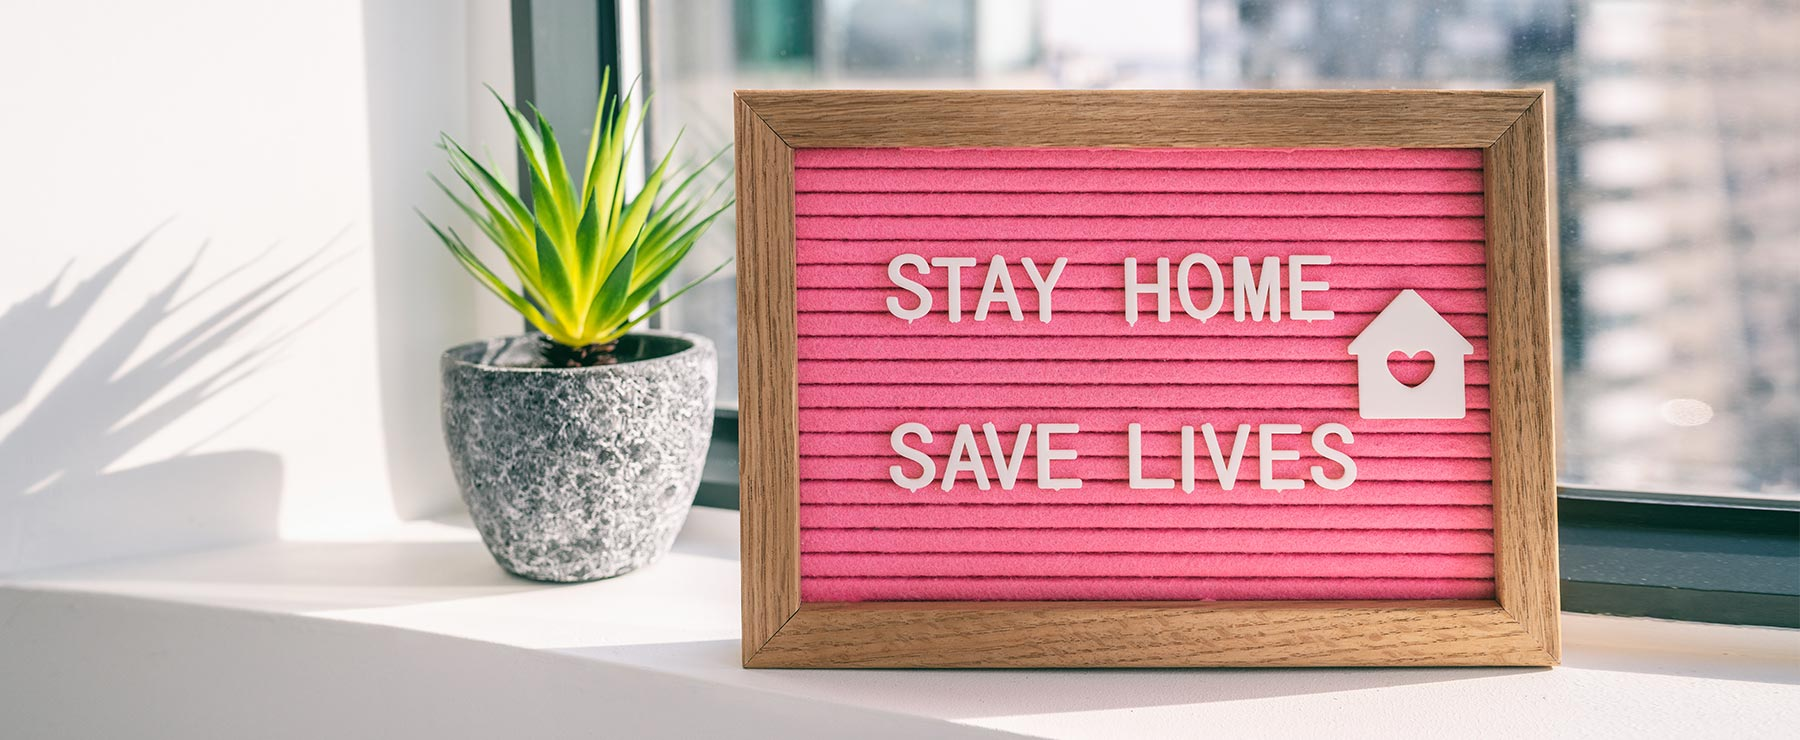 Stay home, stay lives sign | Social distancing | Cannabidiol